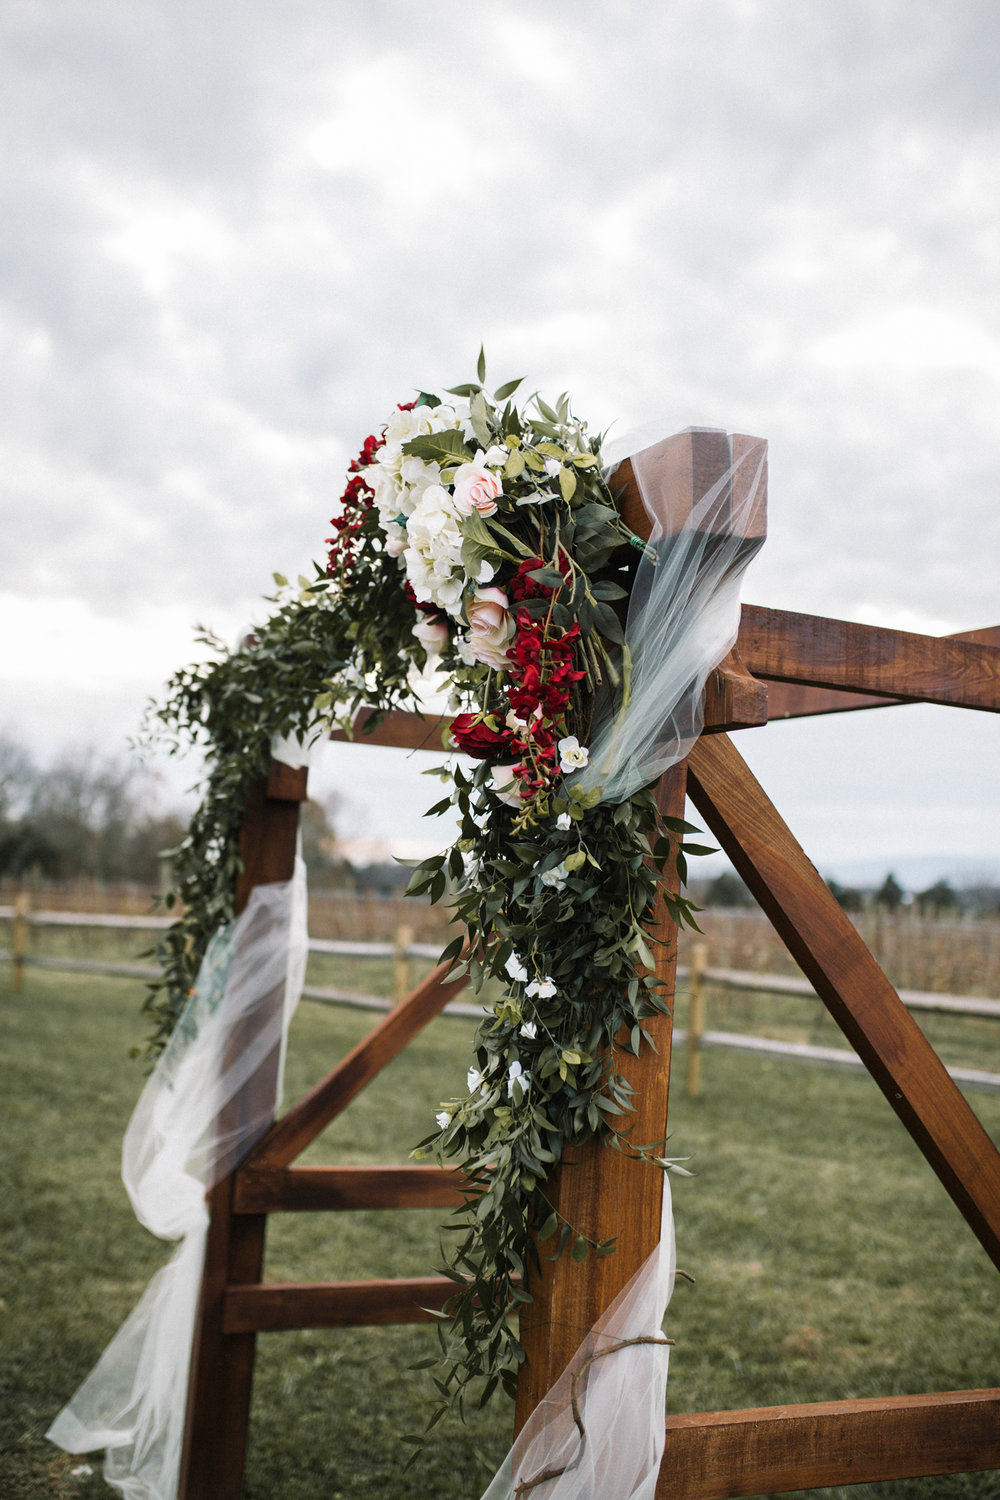 Alyssa and Jesse Winter Vineyard Wedding Luray Virginia Shenandoah Valley Faithbrooke_82.JPG